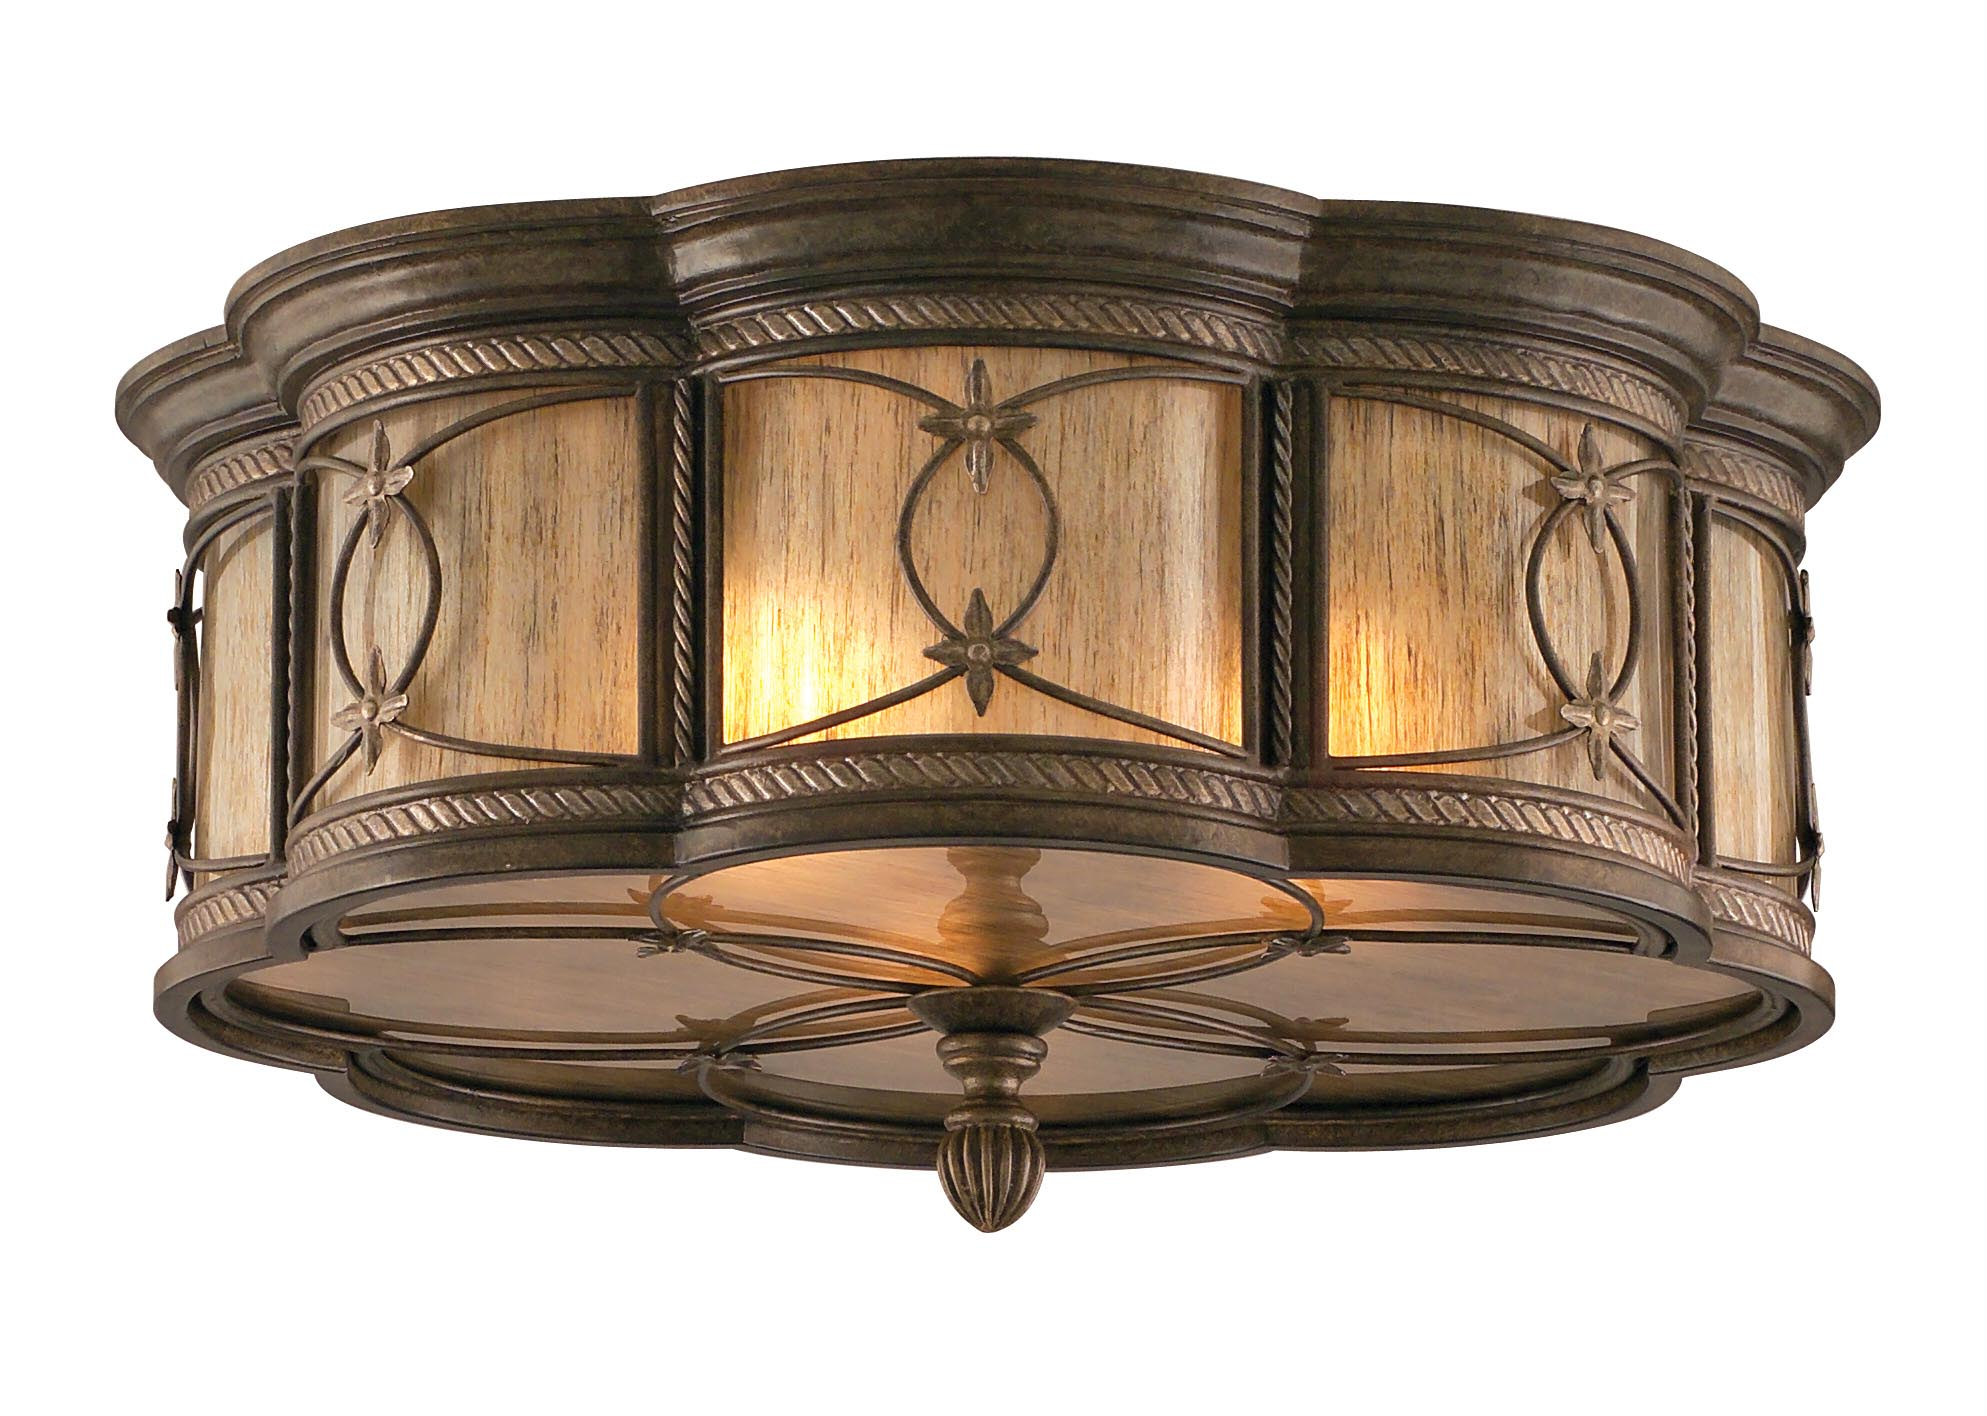 Ceiling Light Fixtures for Hallway